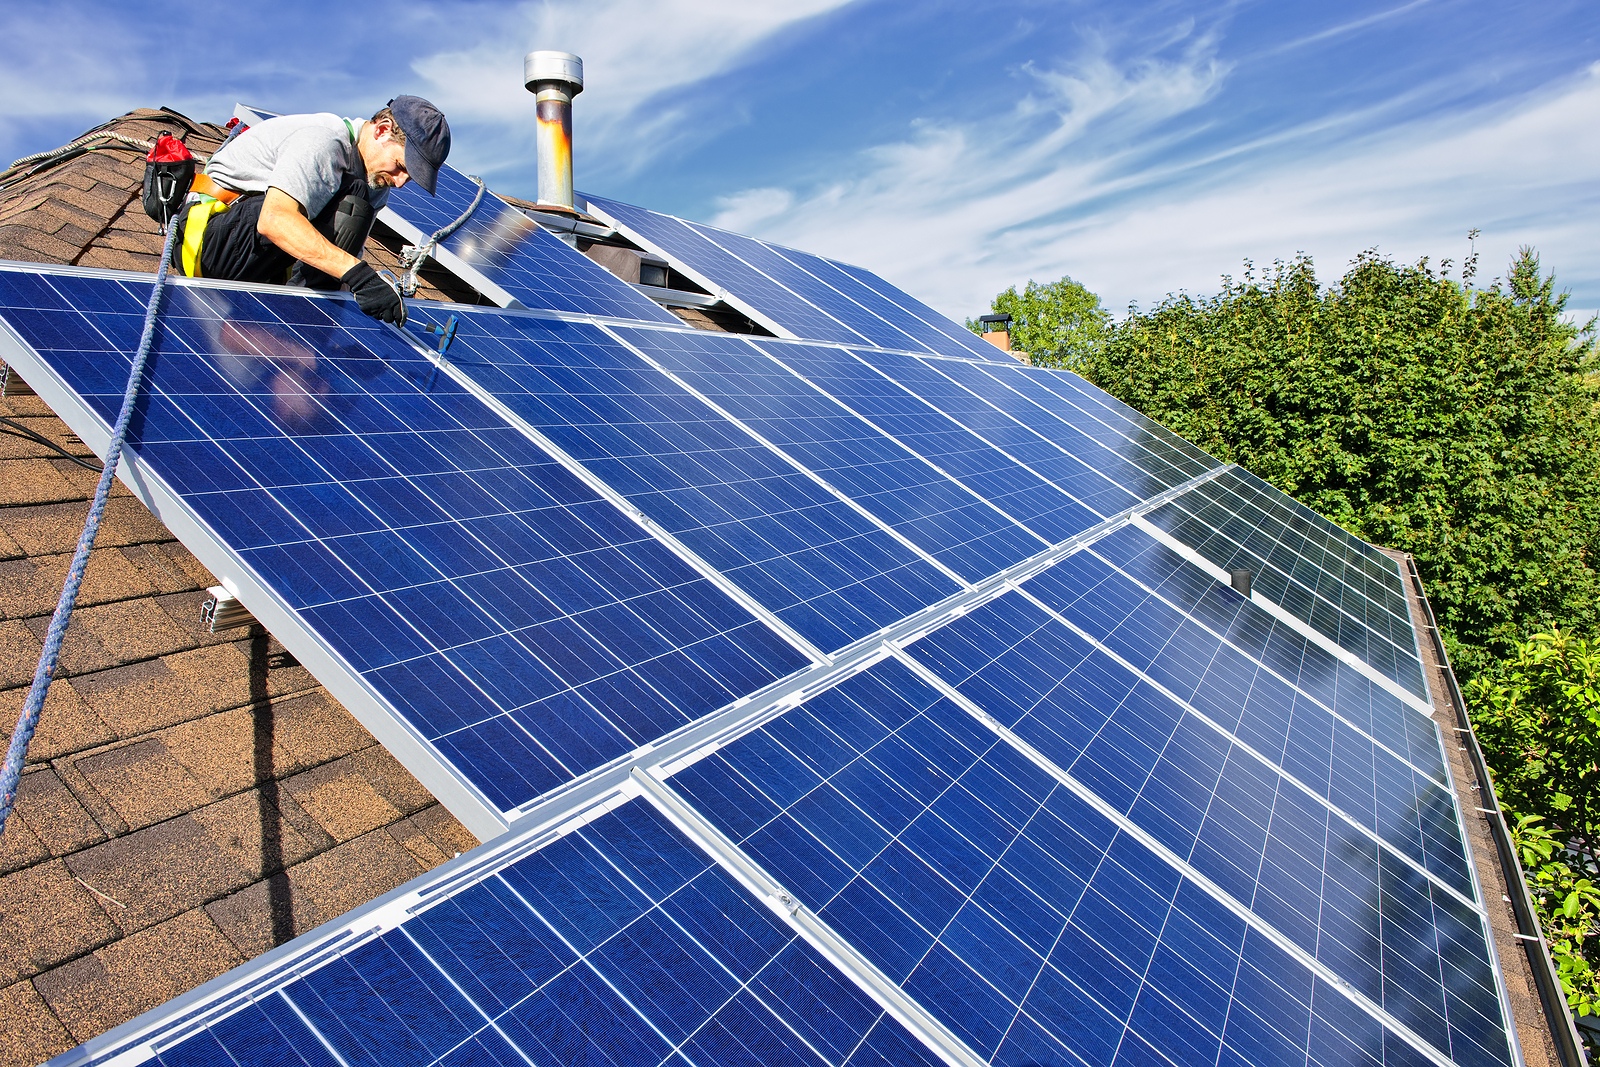 Solar Panels For Your Home >> 5 Good Reasons Why You Should Get Solar Panels For Your Home